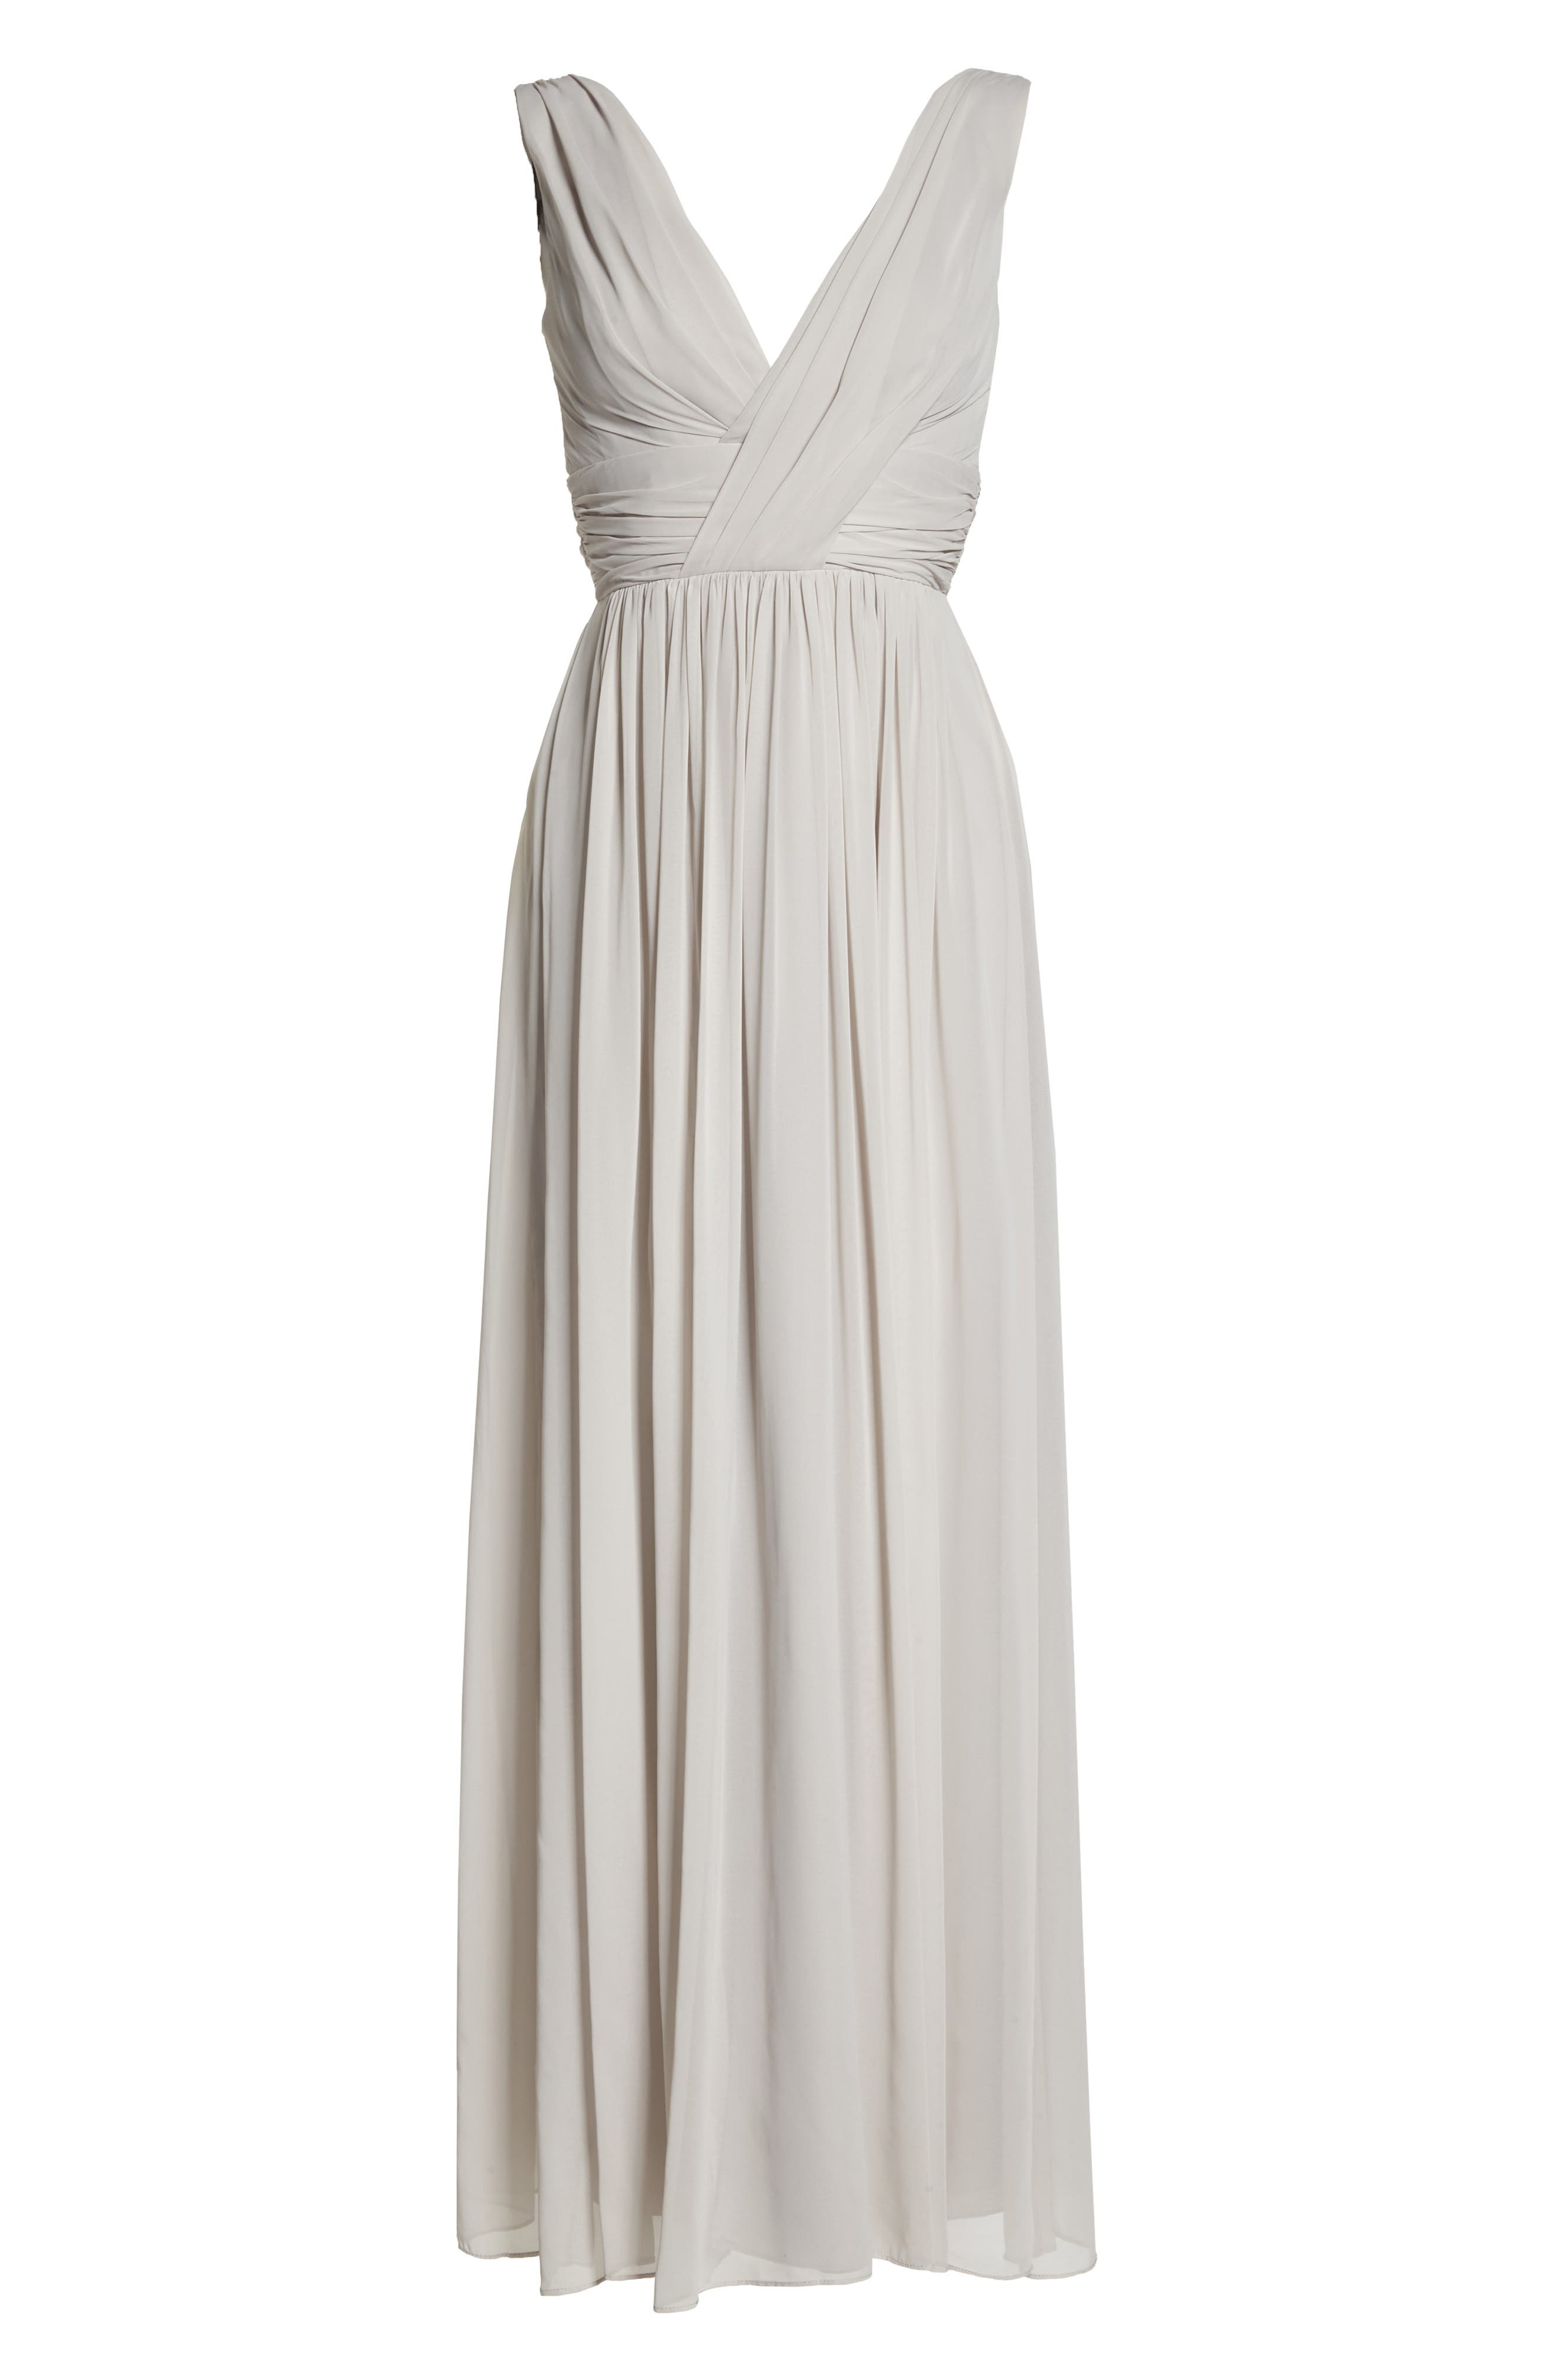 Dessy Collection Surplice Ruched Chiffon Gown, 8 (similar to 1) - Ivory